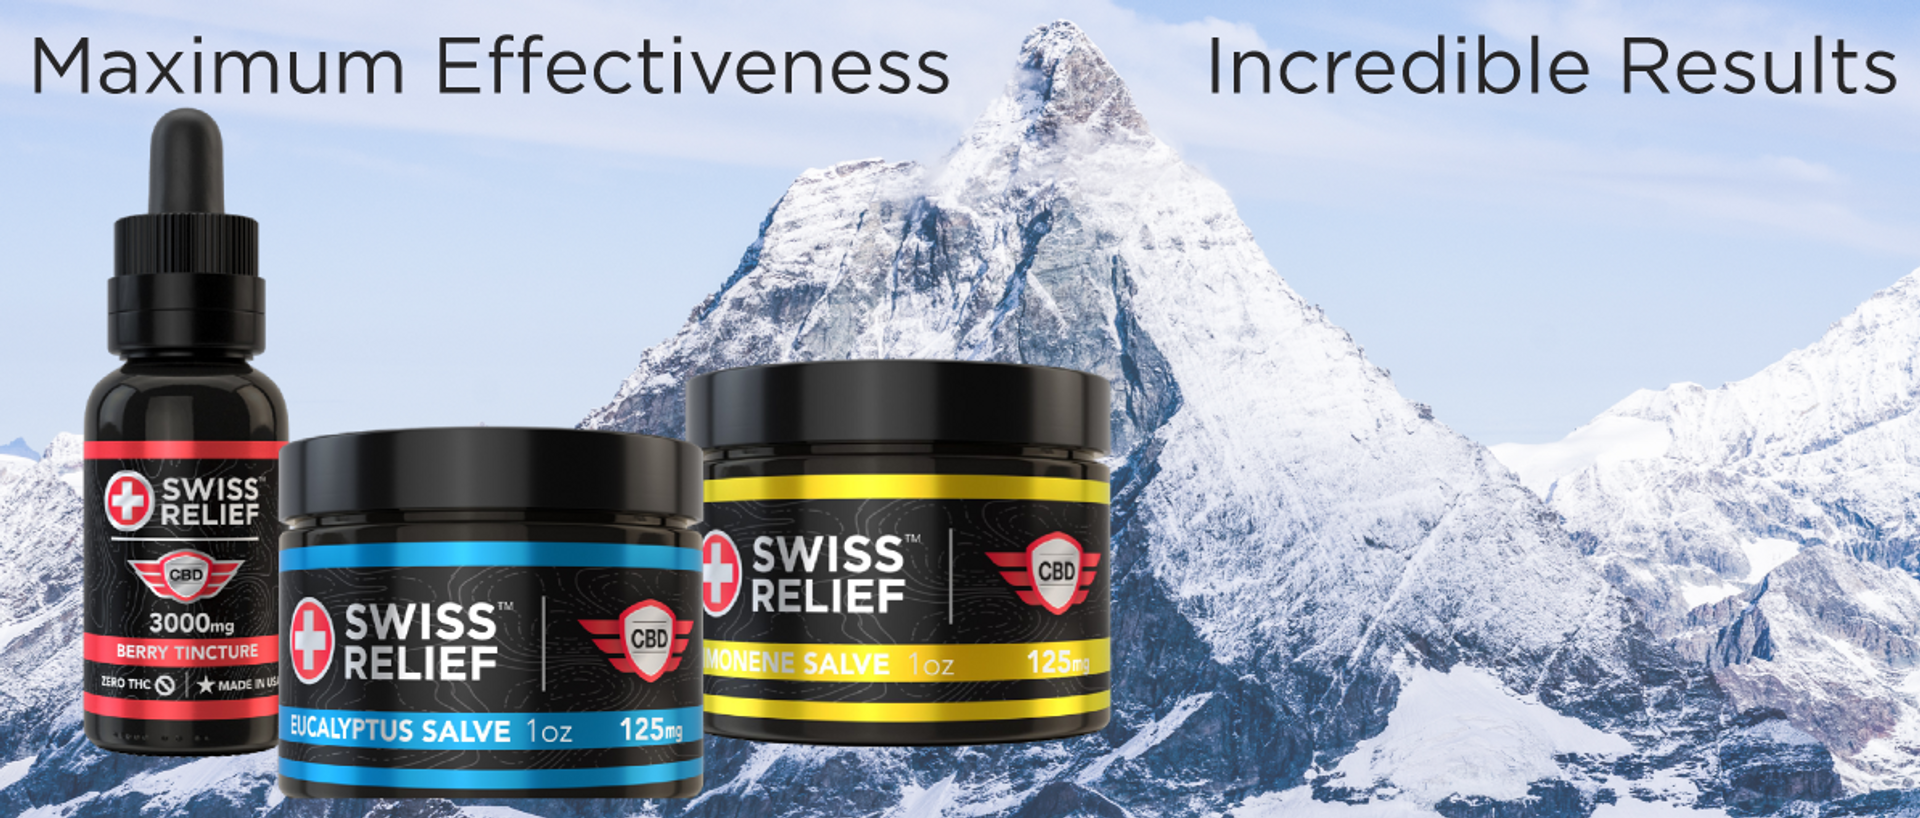 Swiss Relief on cbdresellers.com | Highest Quality CBD Distillate is utilized in every product | CBDResellers.com is the official Retailer, Distributor  for This Top 5 Rated CBD Products | Satisfaction Guaranteed